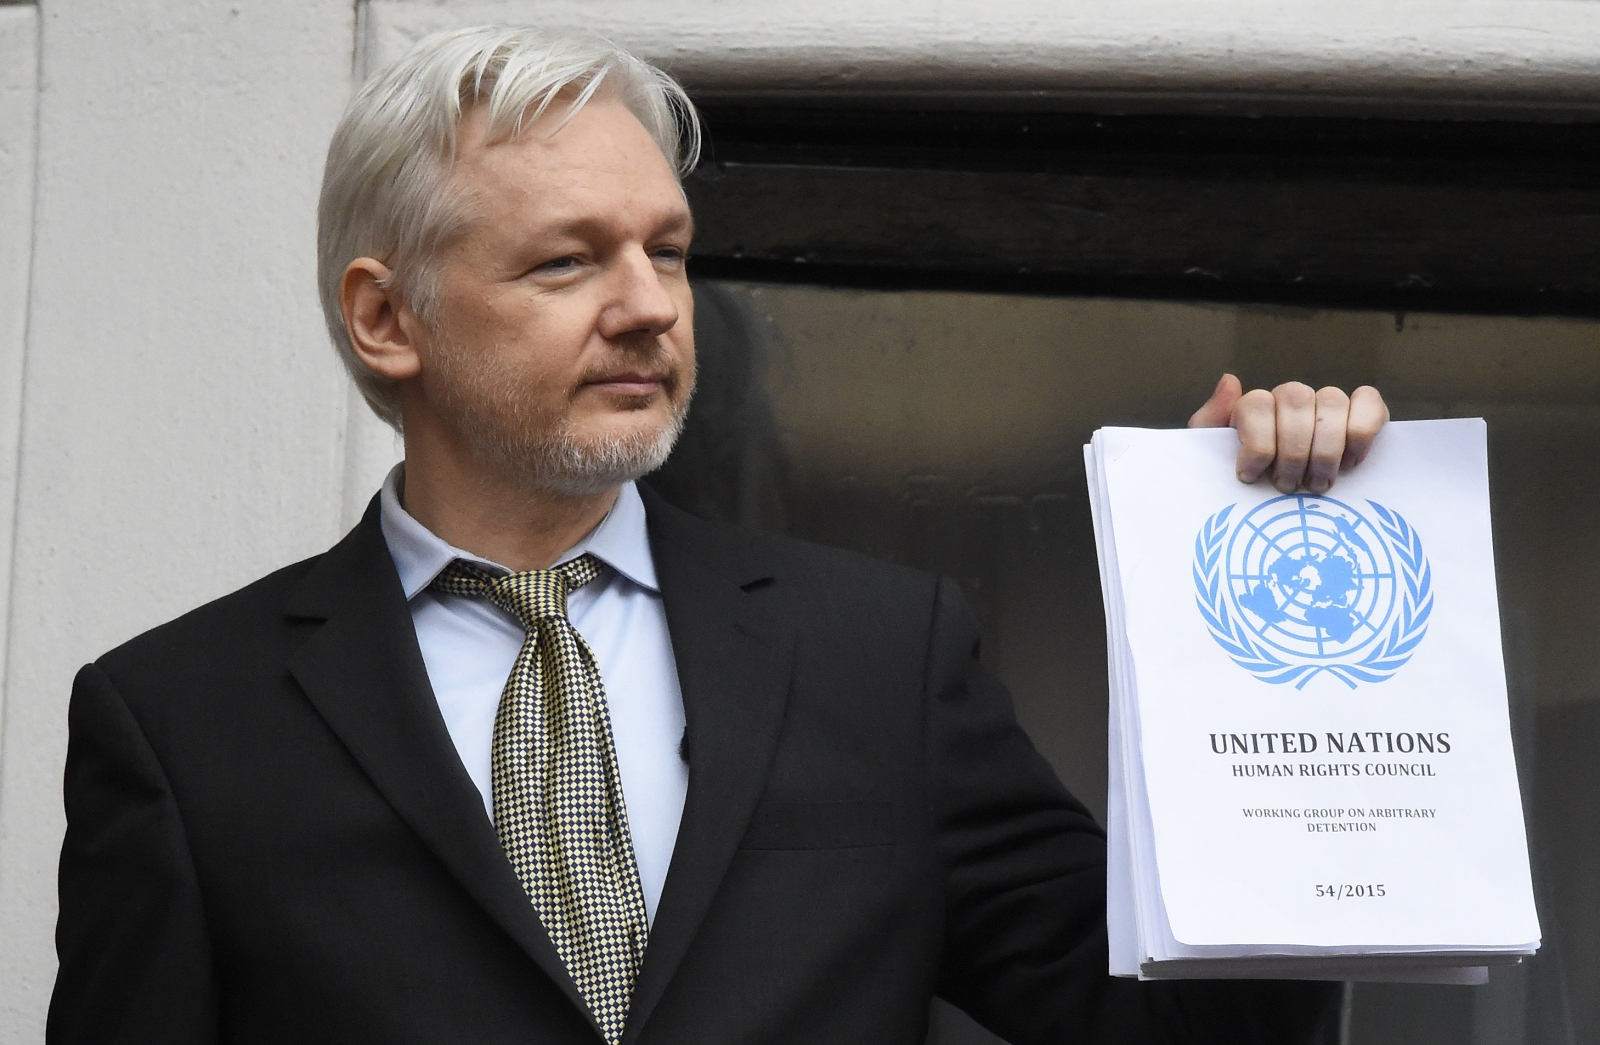 WikiLeaks founder Julian Assange claims Google involved in Hilary Clinton campaign